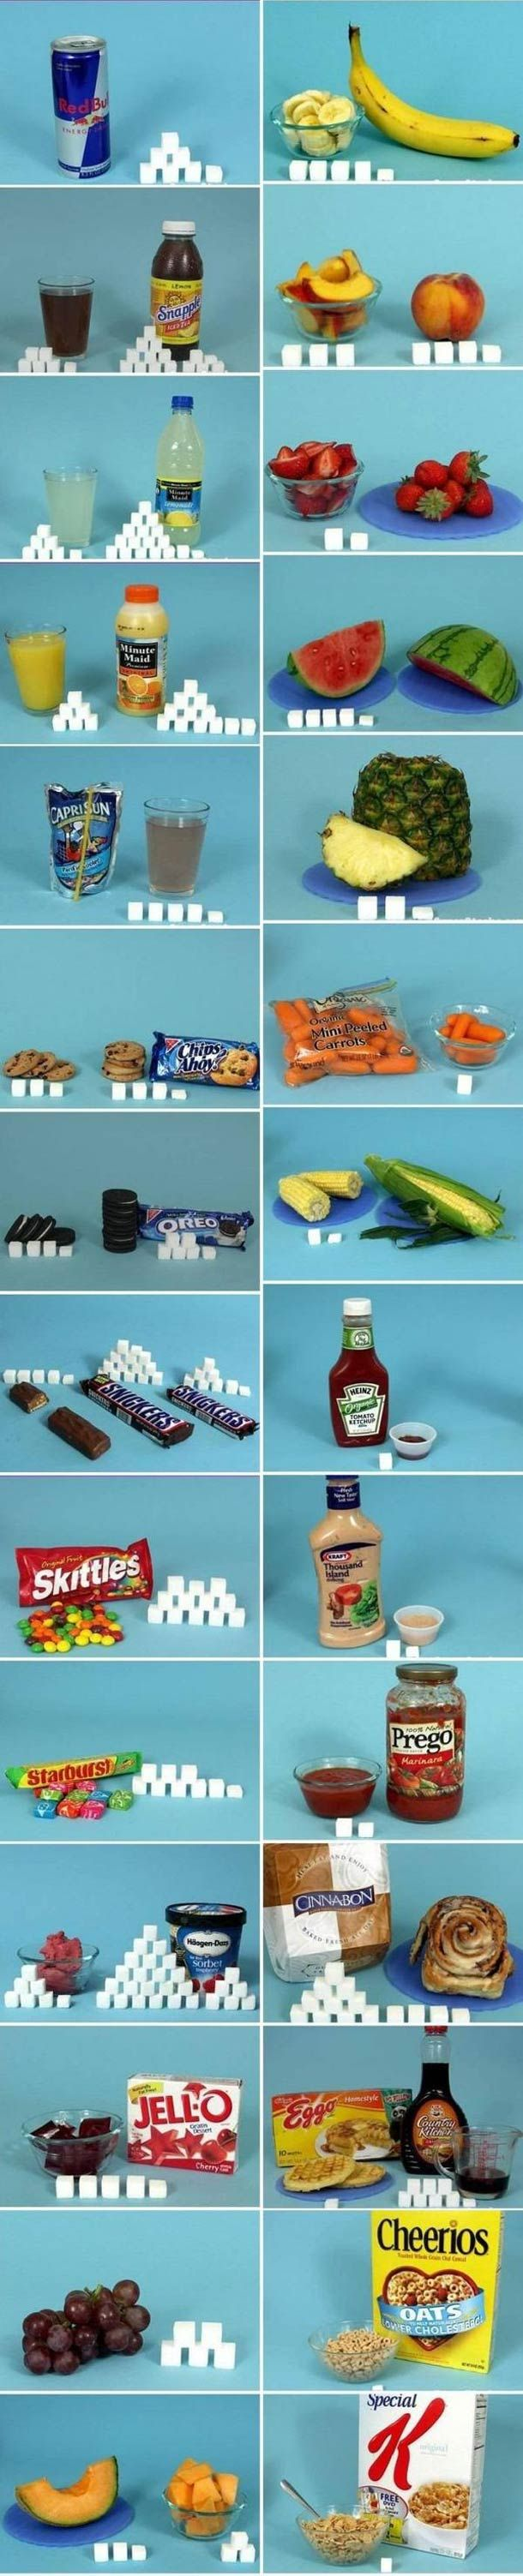 Amount of sugar in foods shown in sugar cubes